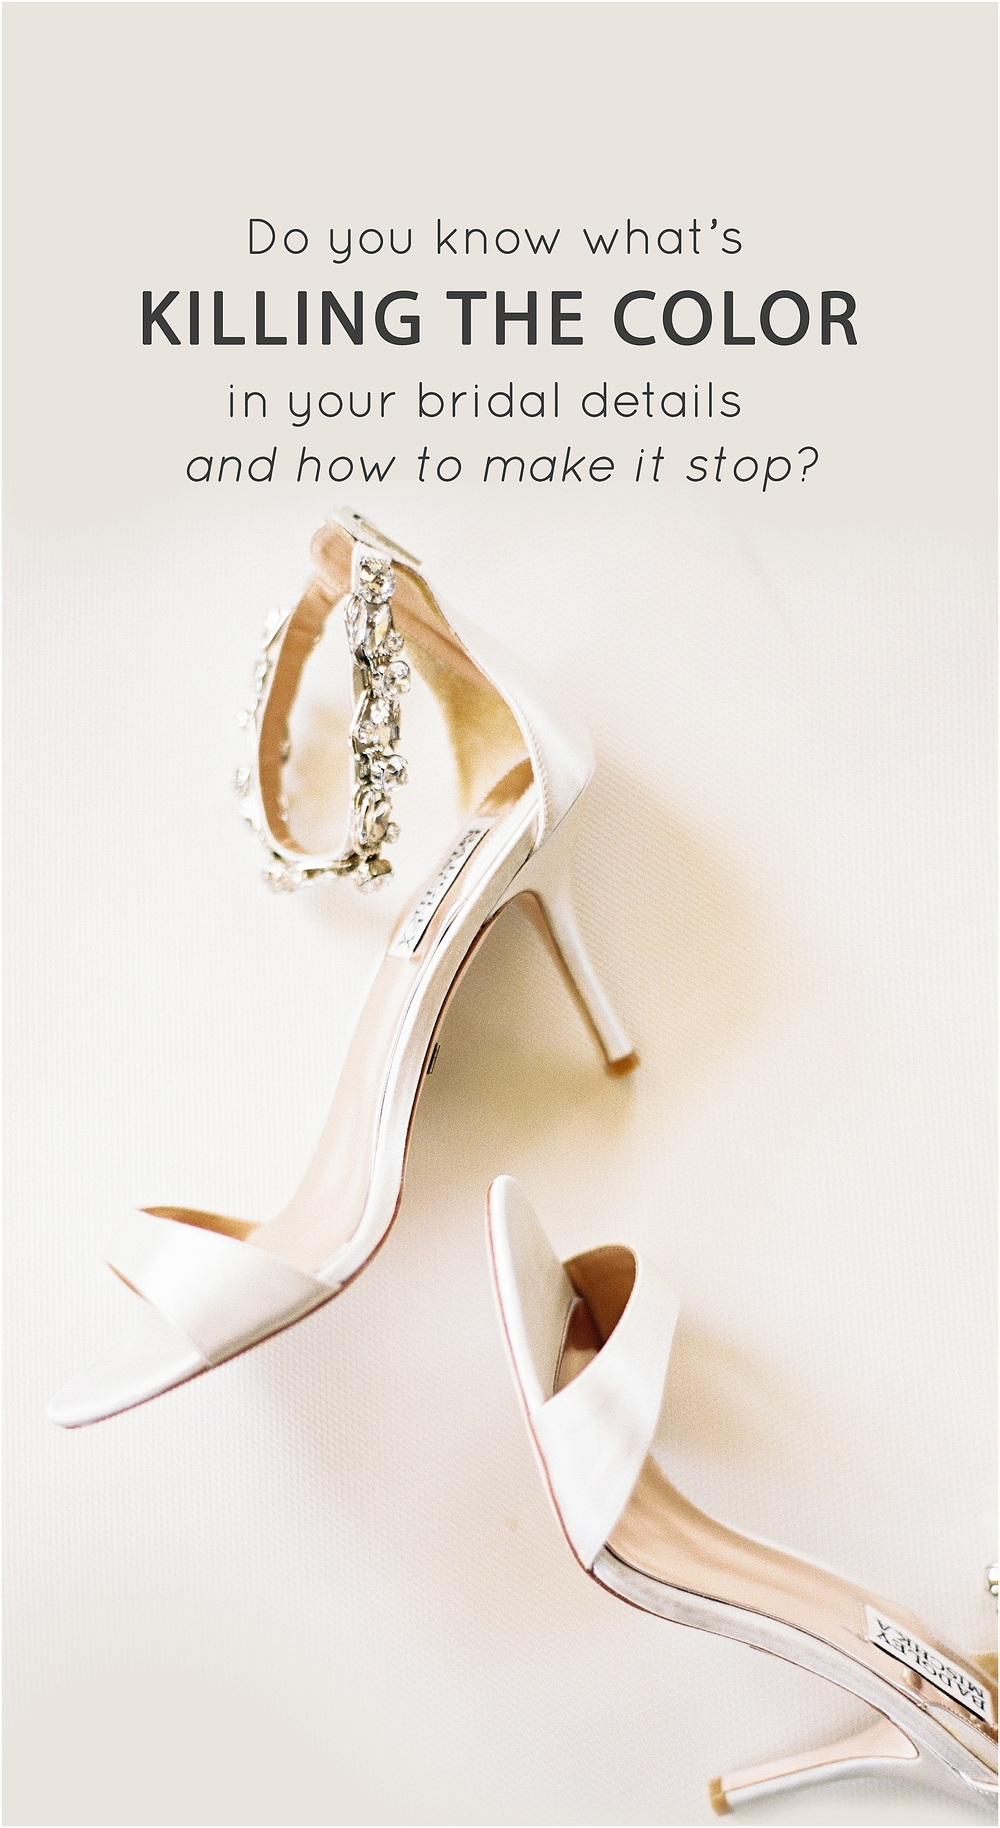 Do you know what's killing the color in your bridal details and how to make it stop? - The Jordan Brittley Blog (www.jordanbrittleyblog.com)